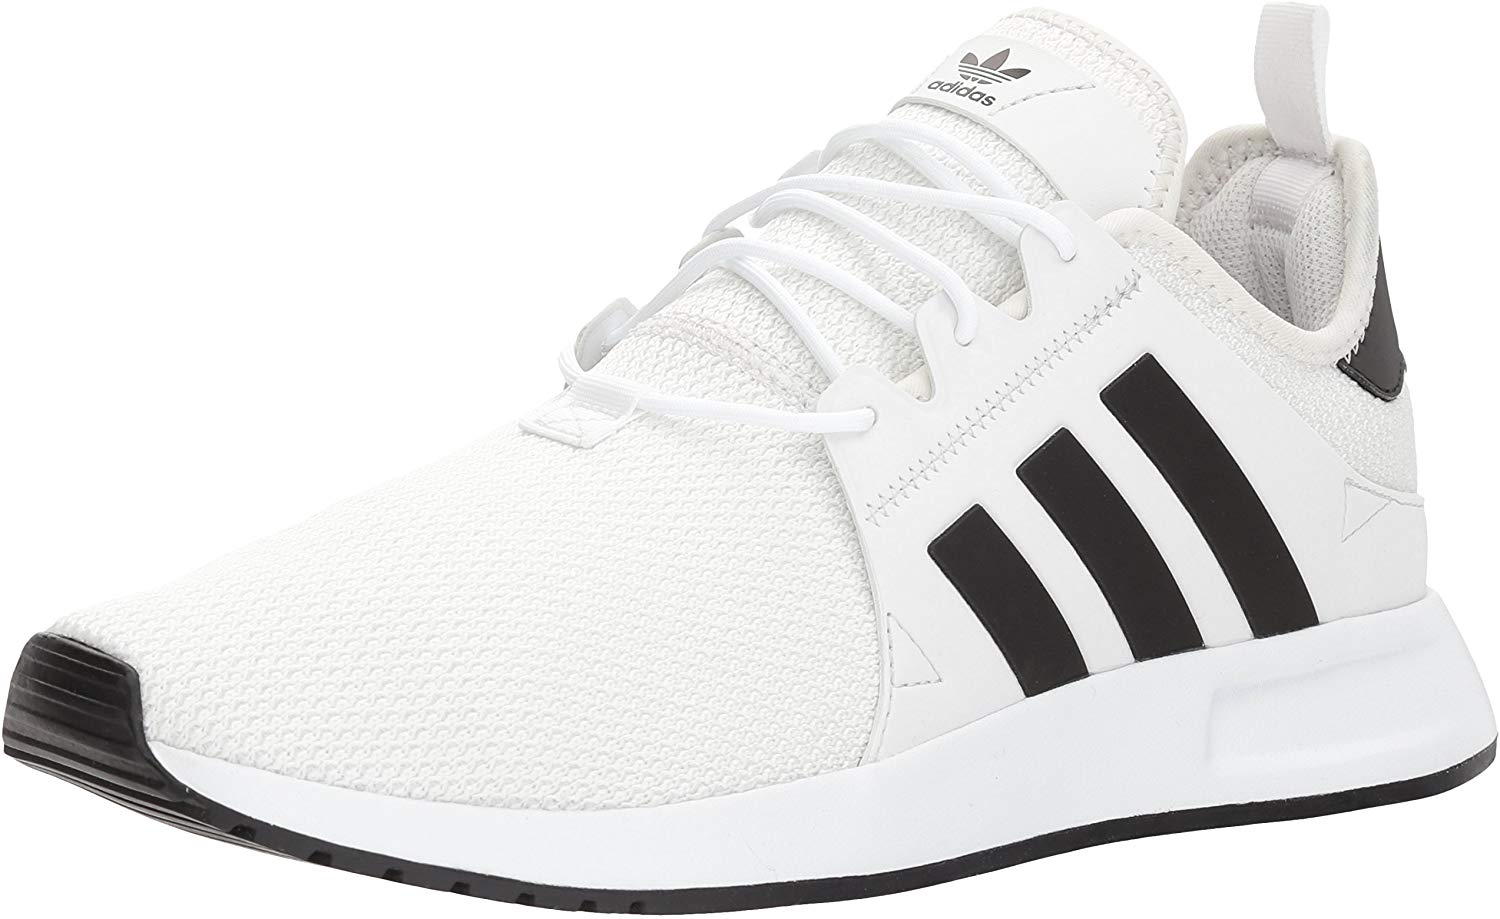 adidas Originals Mens X_PLR Running Shoe - Tint/Black/White - 8.5